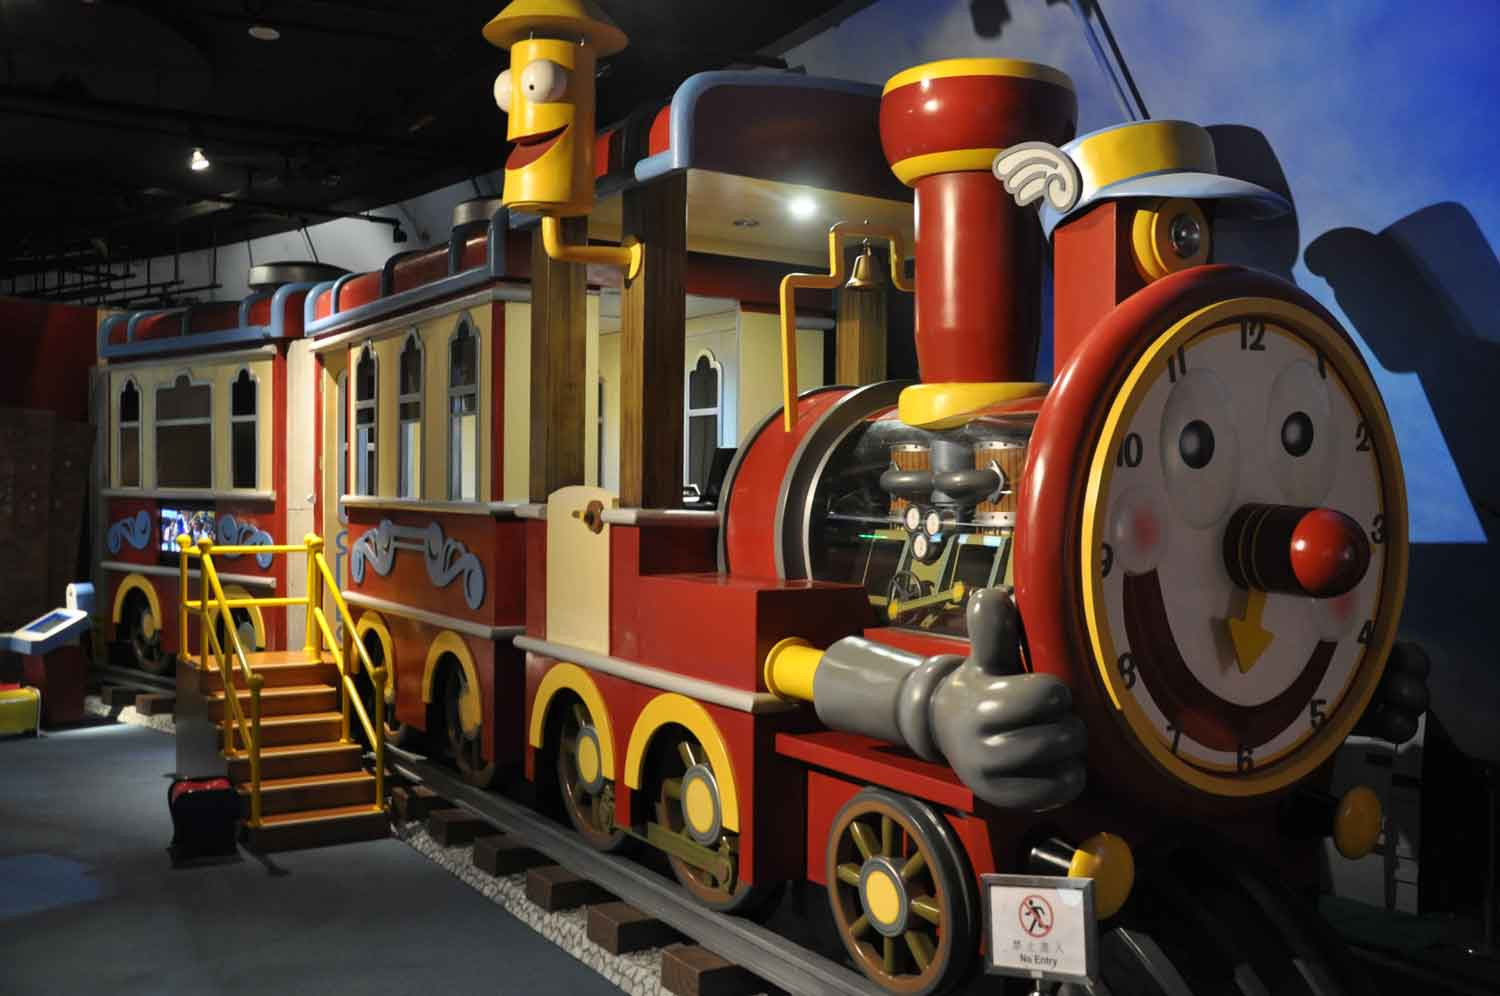 Science Center Macau train